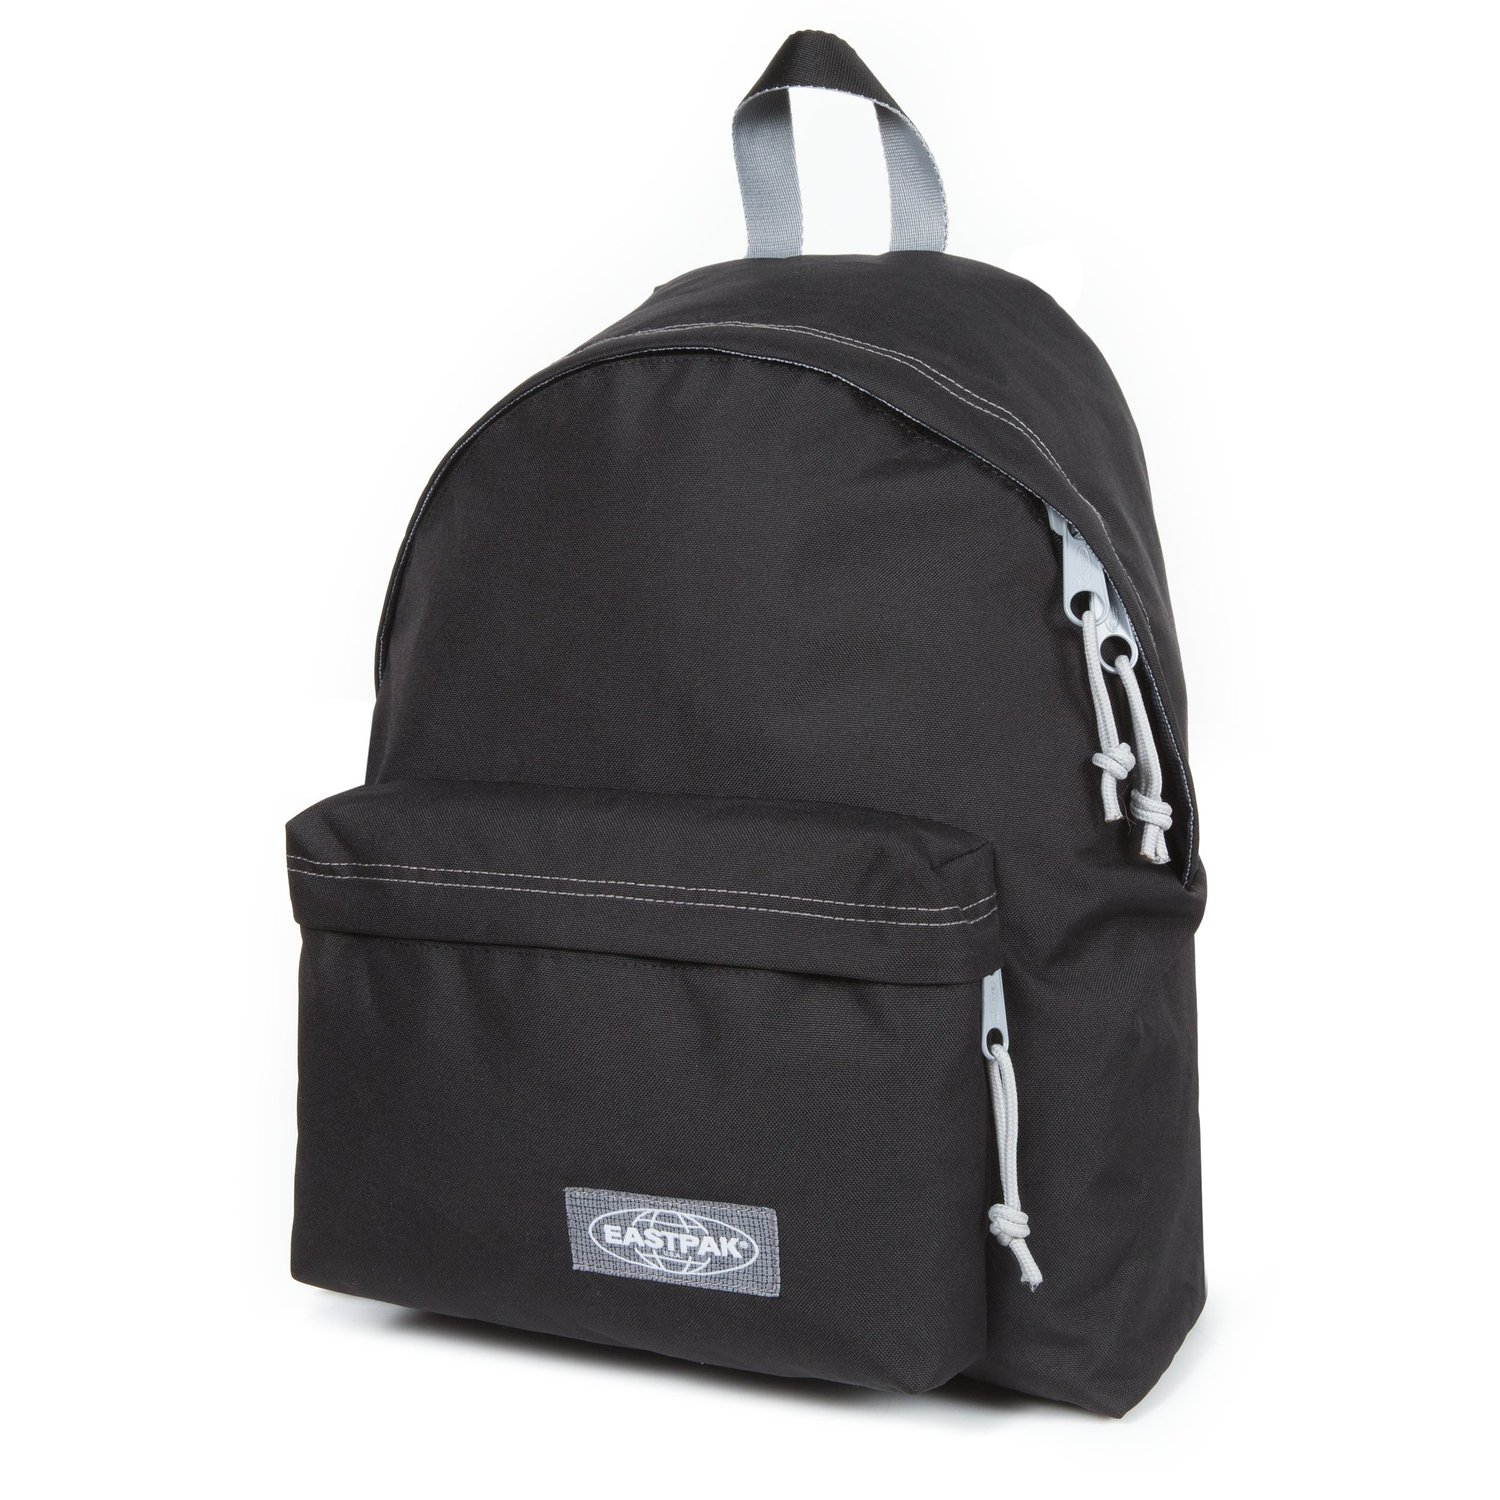 6f8d011cb6f Buy Eastpak Padded Pakr Backpack Stripe In in Cheap Price on Alibaba.com